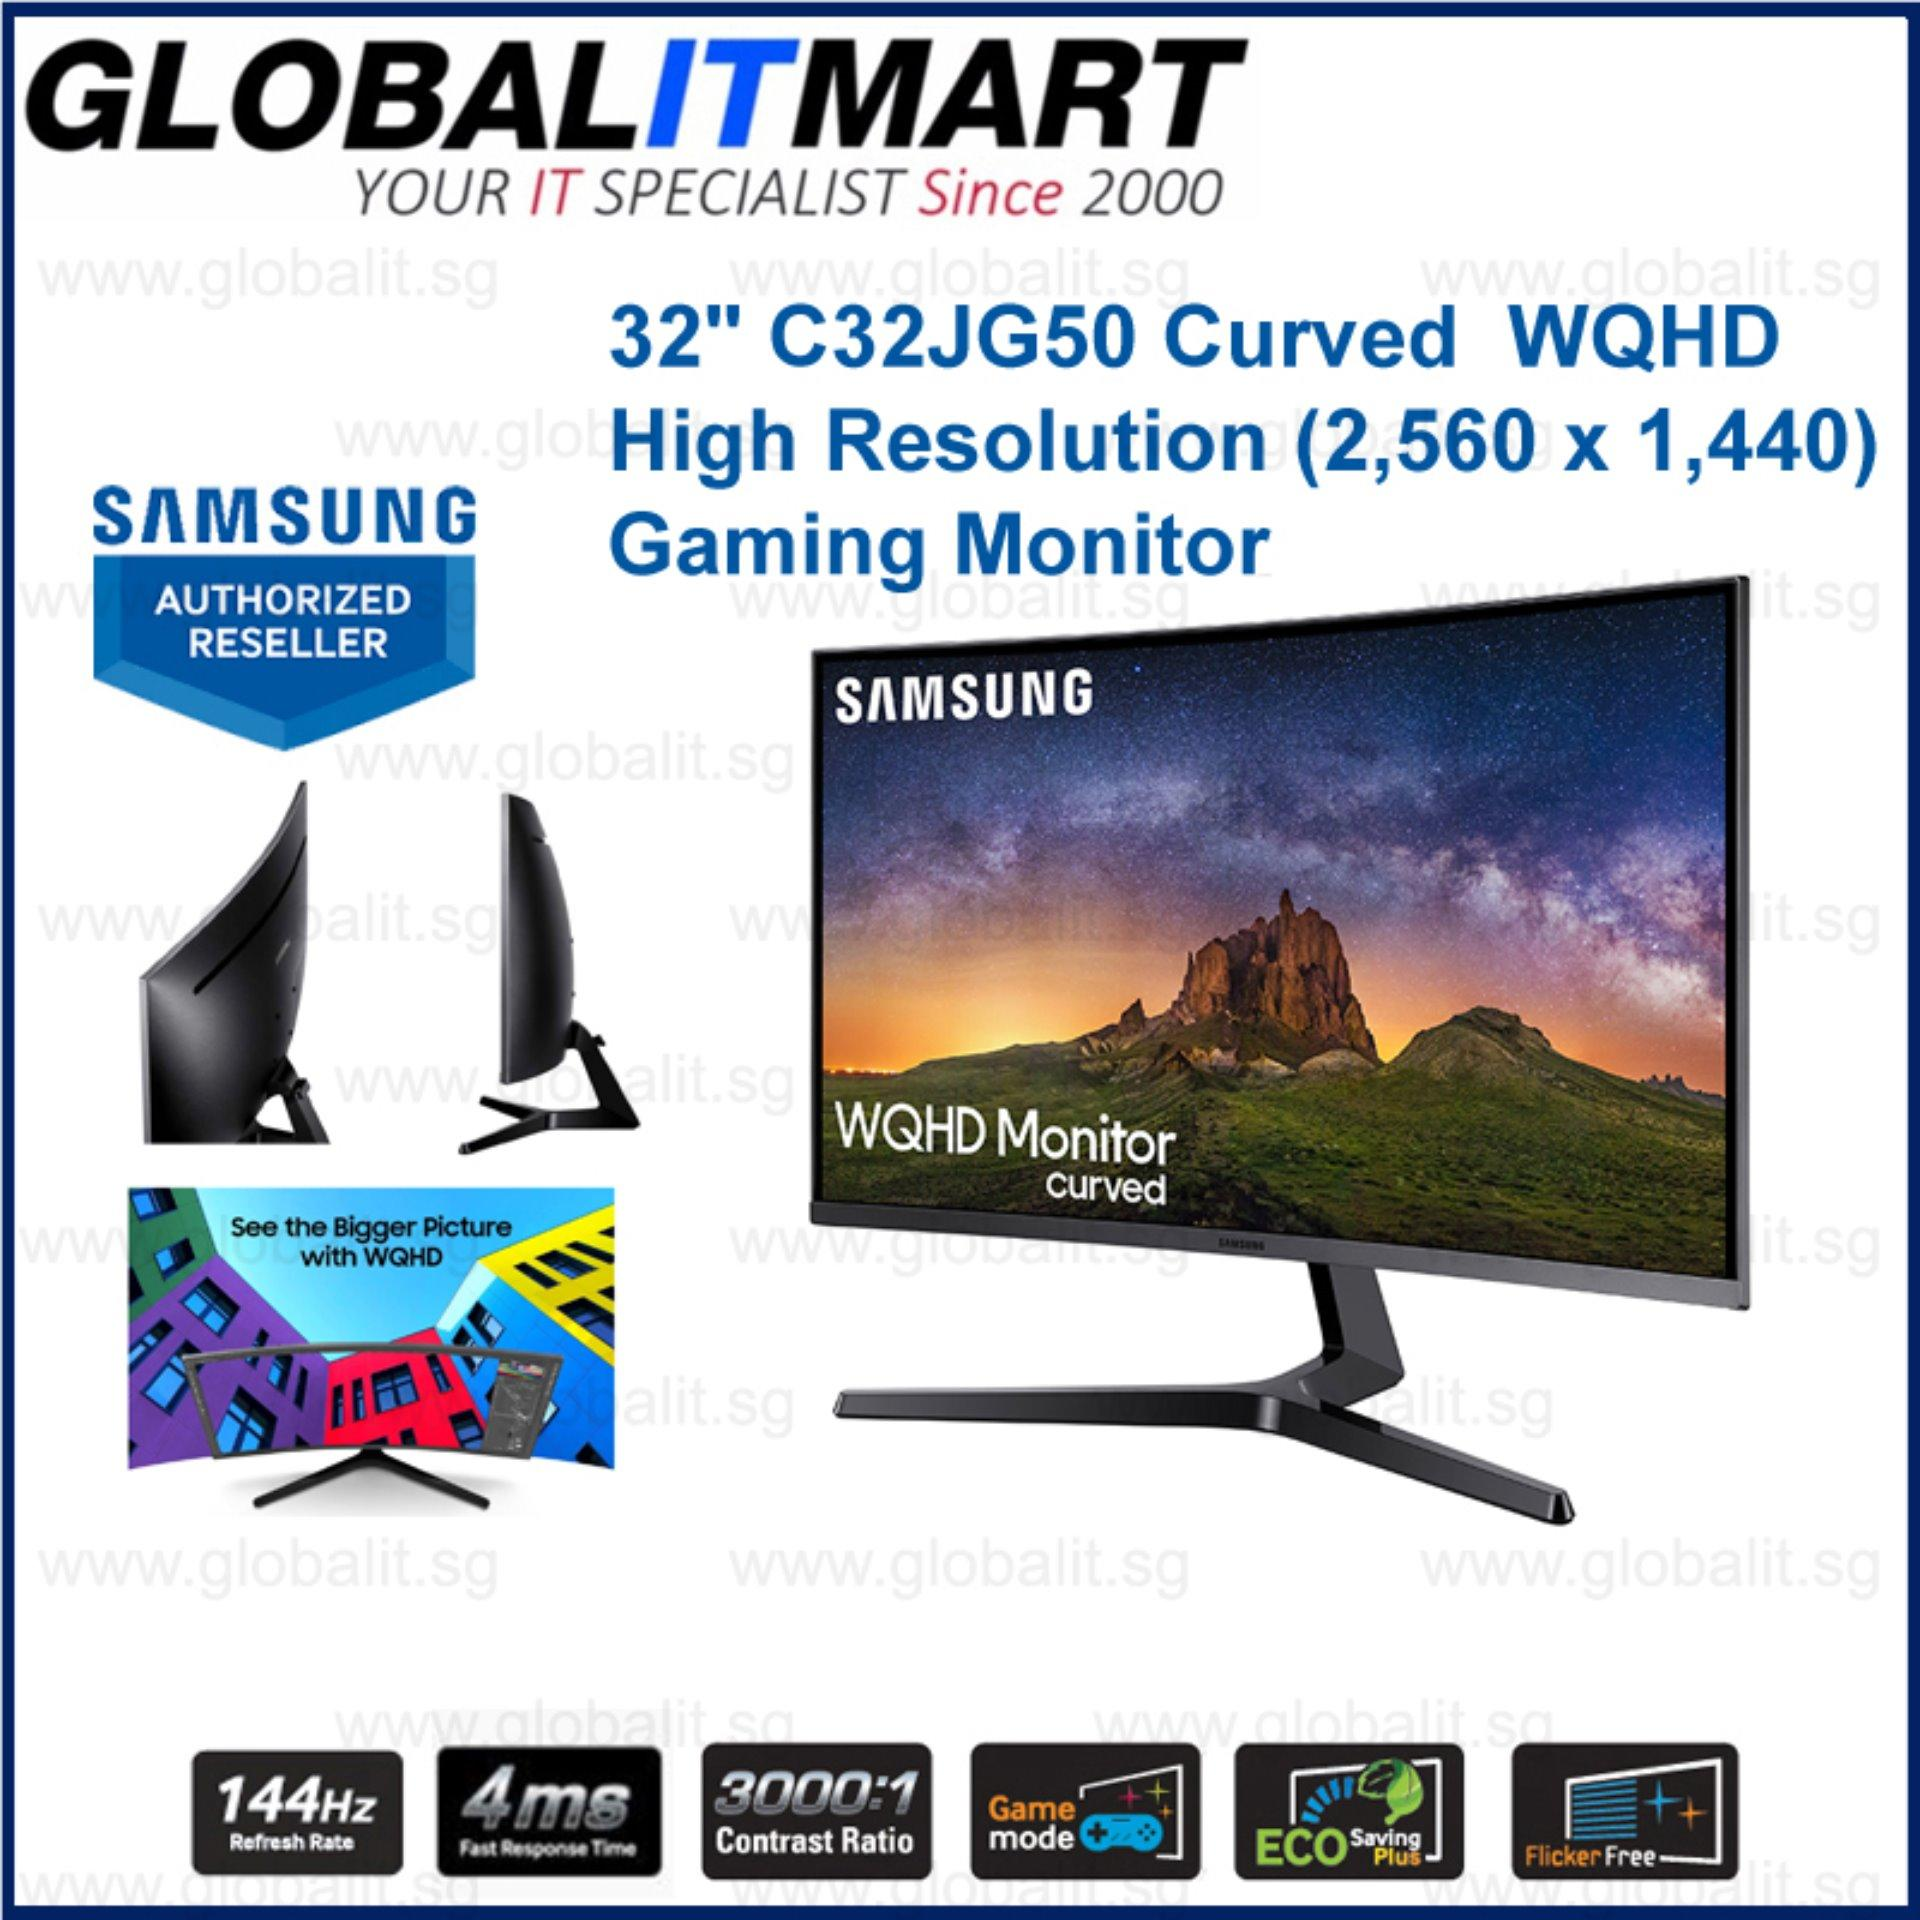 Samsung 32 Inch C32JG50 Curved High Resolution WQHD (2,560 x 1,440) 144Hz Gaming Monitor